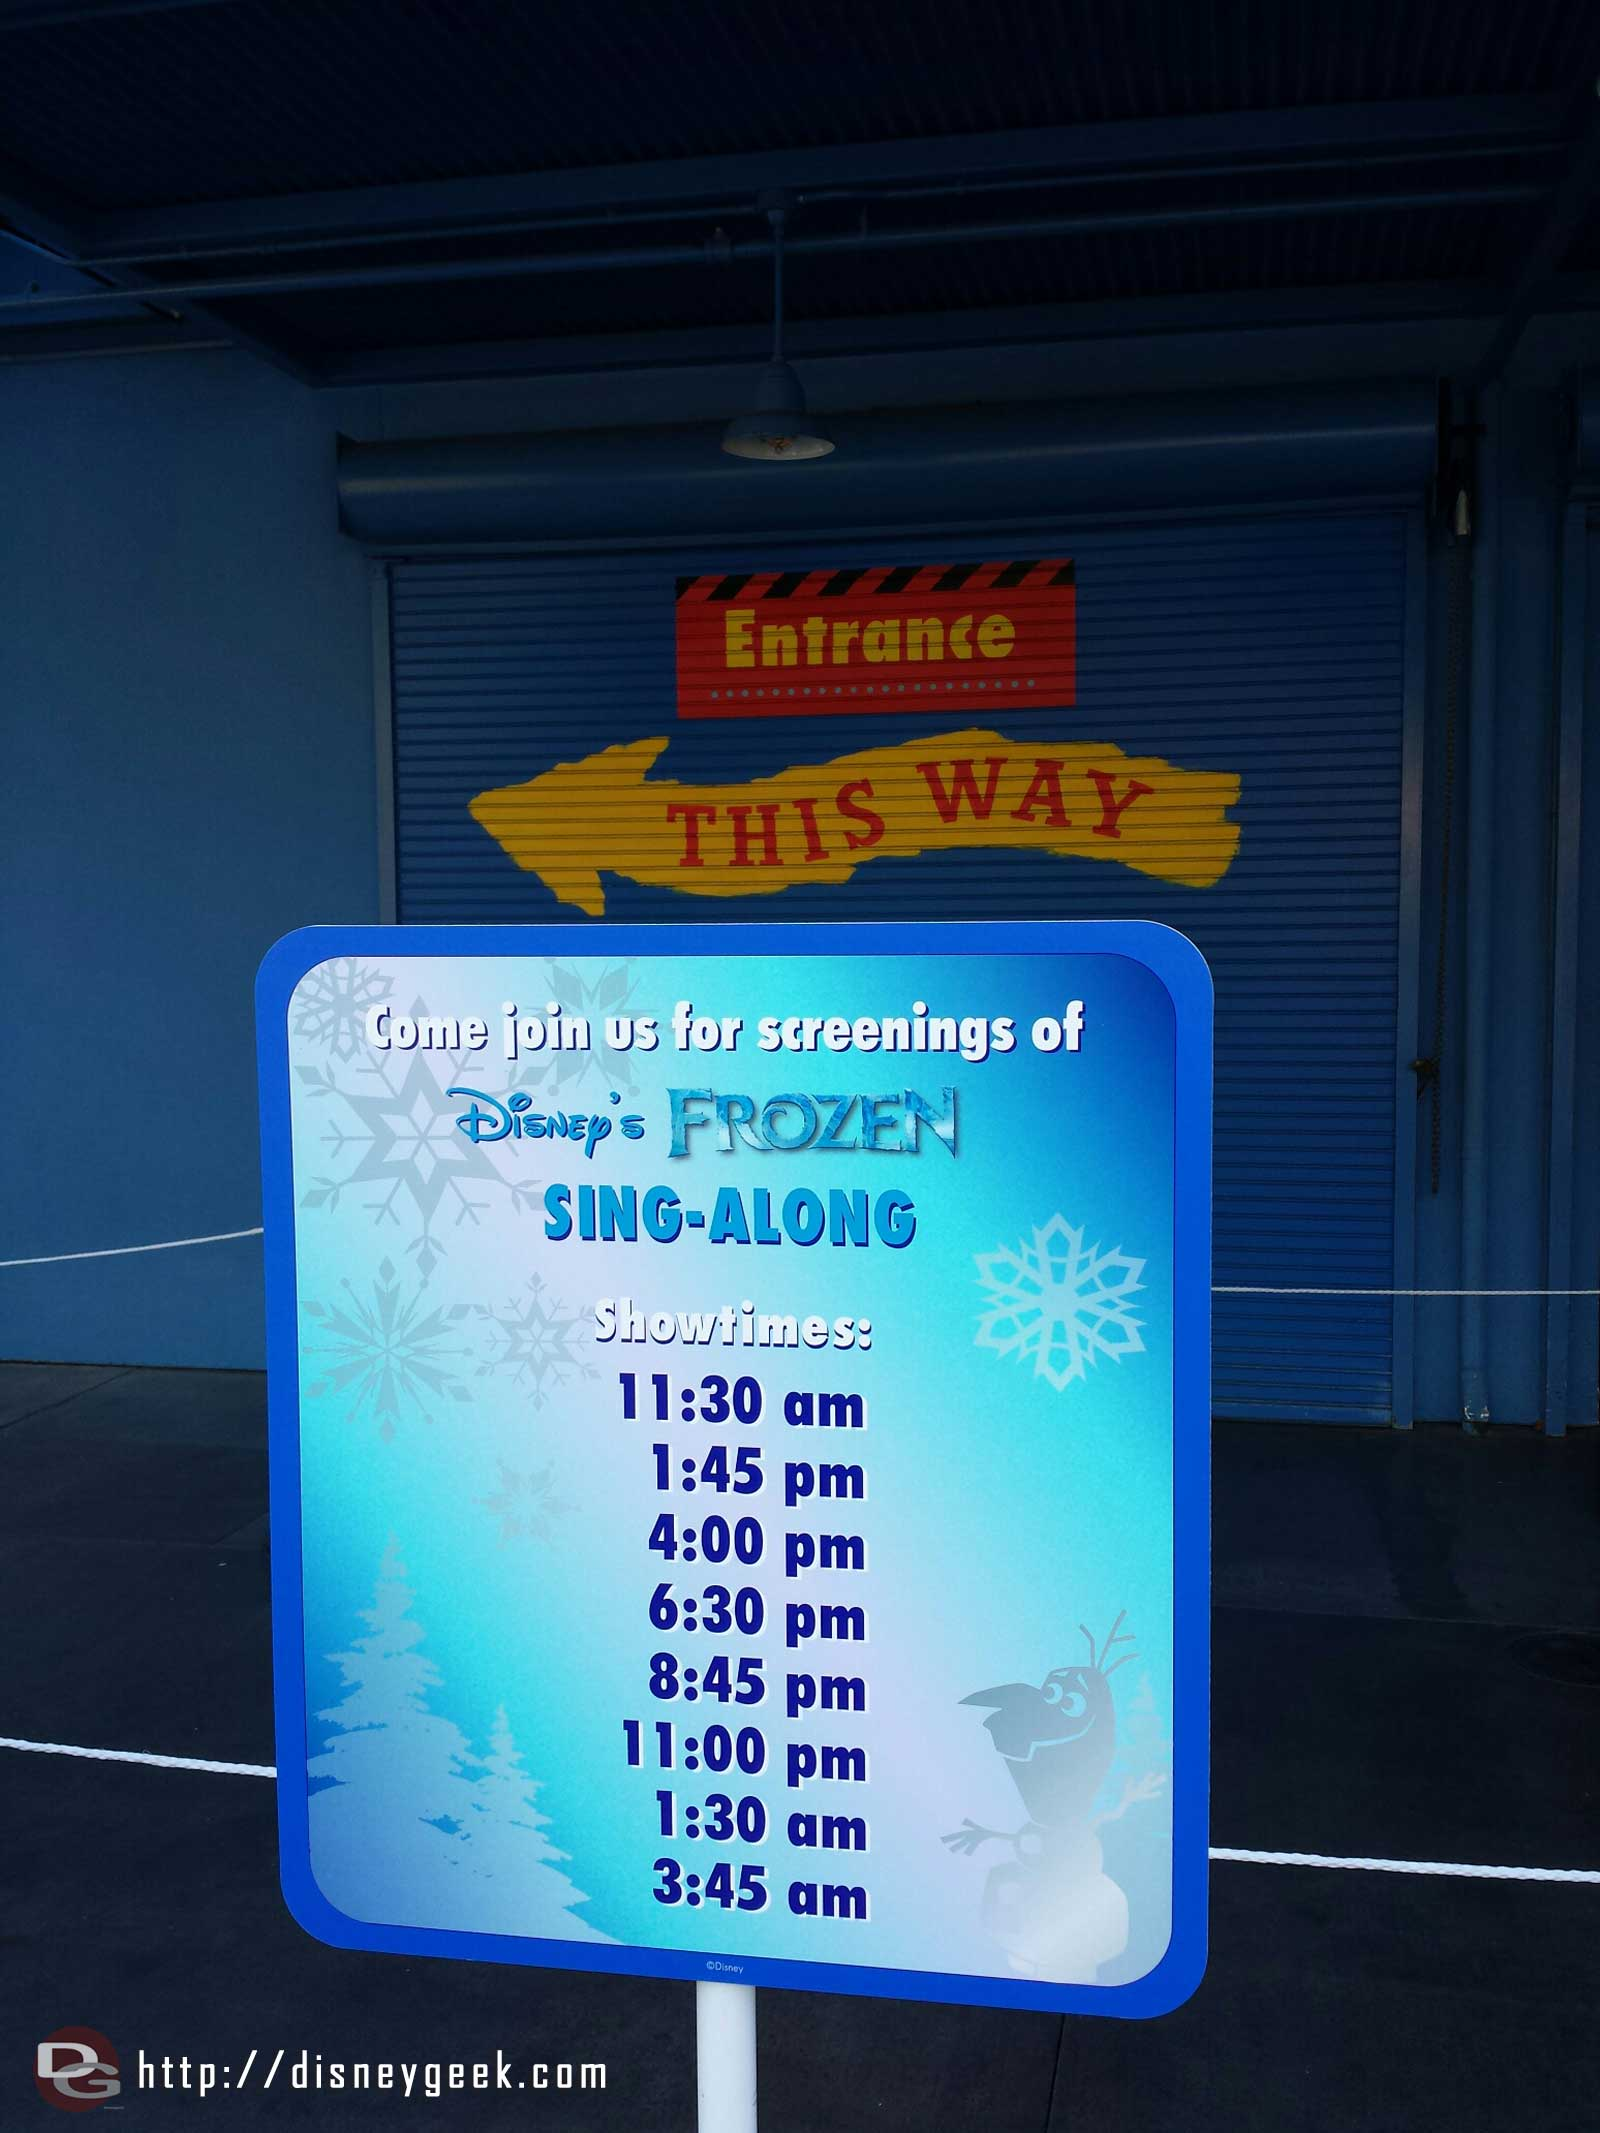 No Muppets today, instead Frozen sing-along all day & night #Disney24  #DisneySide